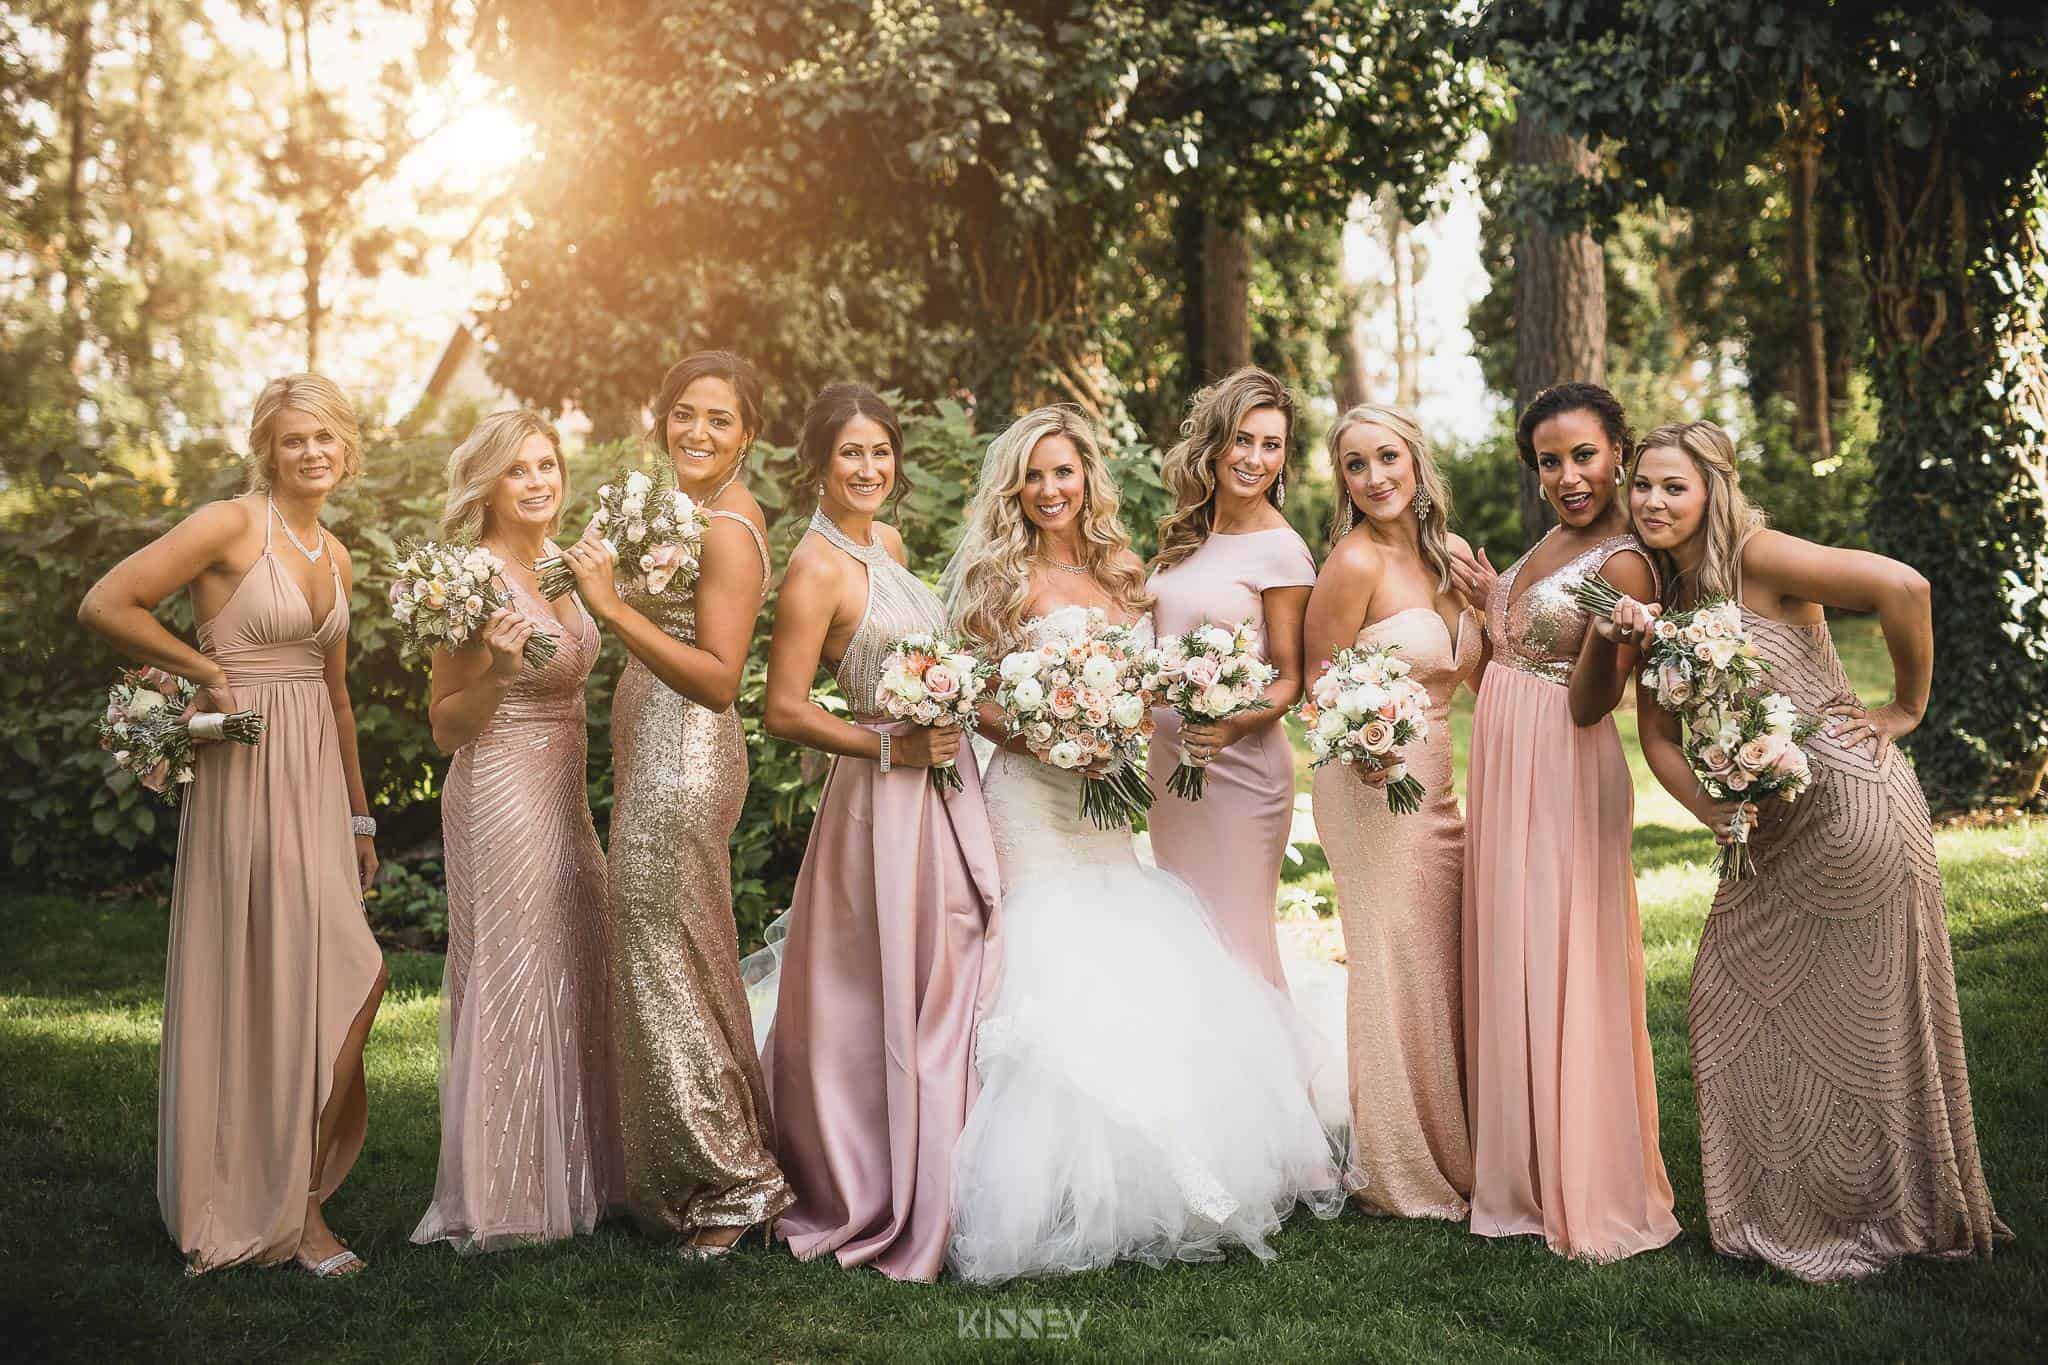 Eight women who are wearing matching colored outfits and a bride are standing on grass